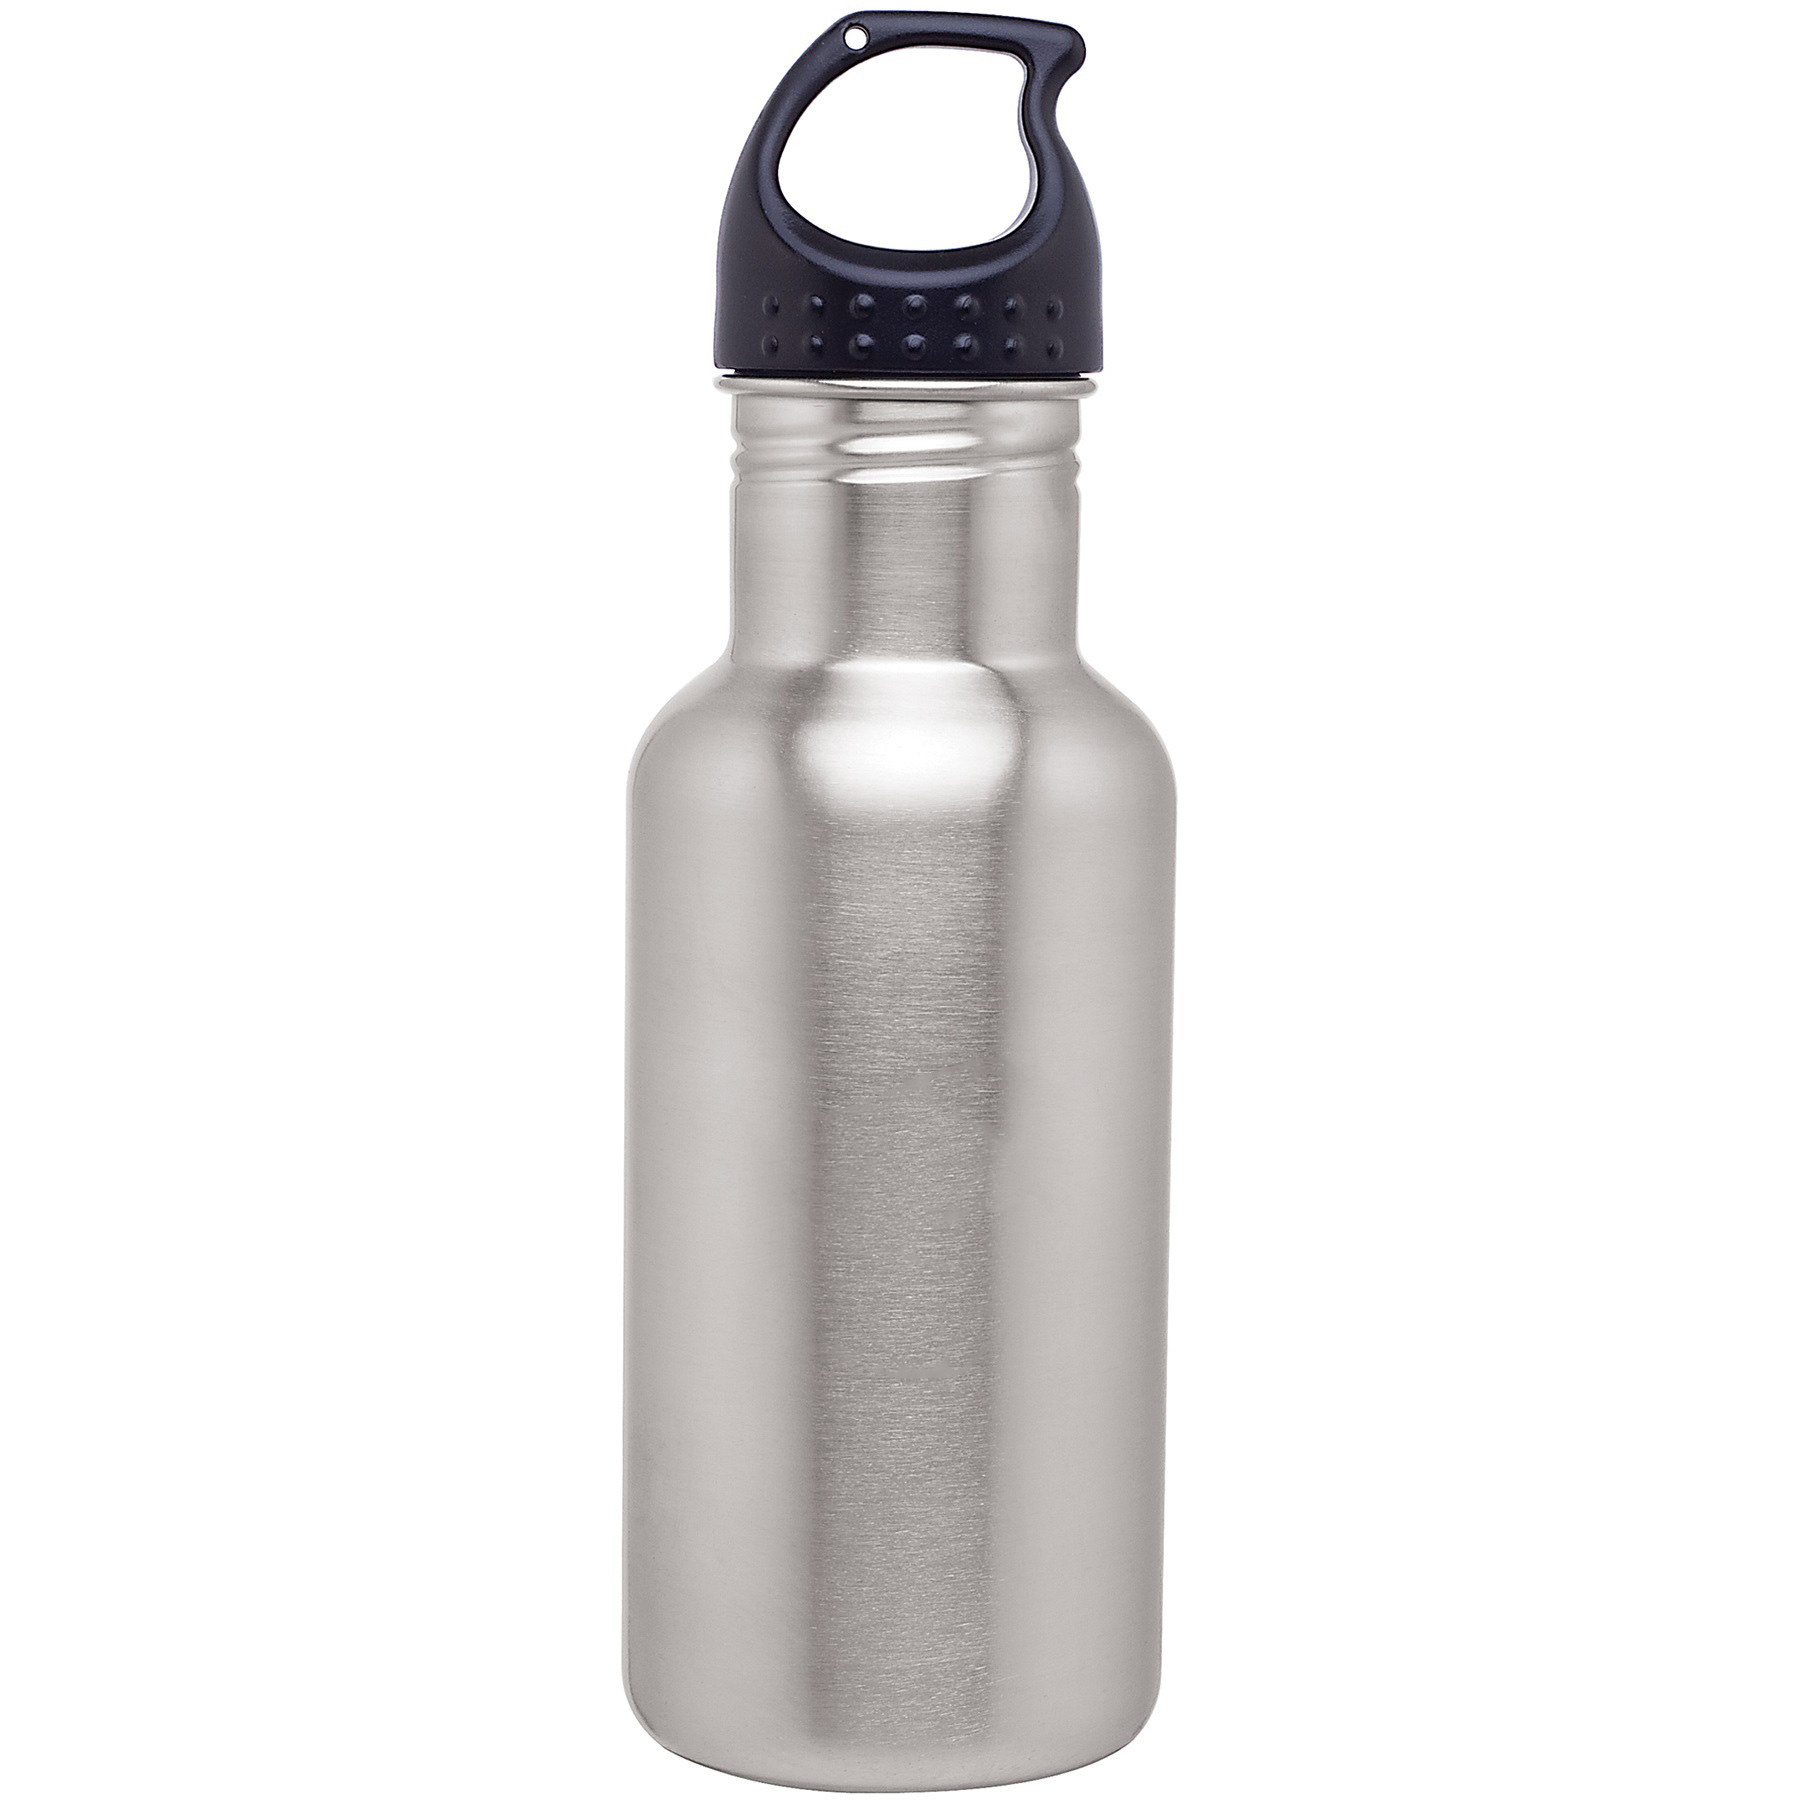 ZC-OT-P Best Stainless Steel BPA Free Water Slim Bottle Value Pack with Free Carabiner and Leak Proo